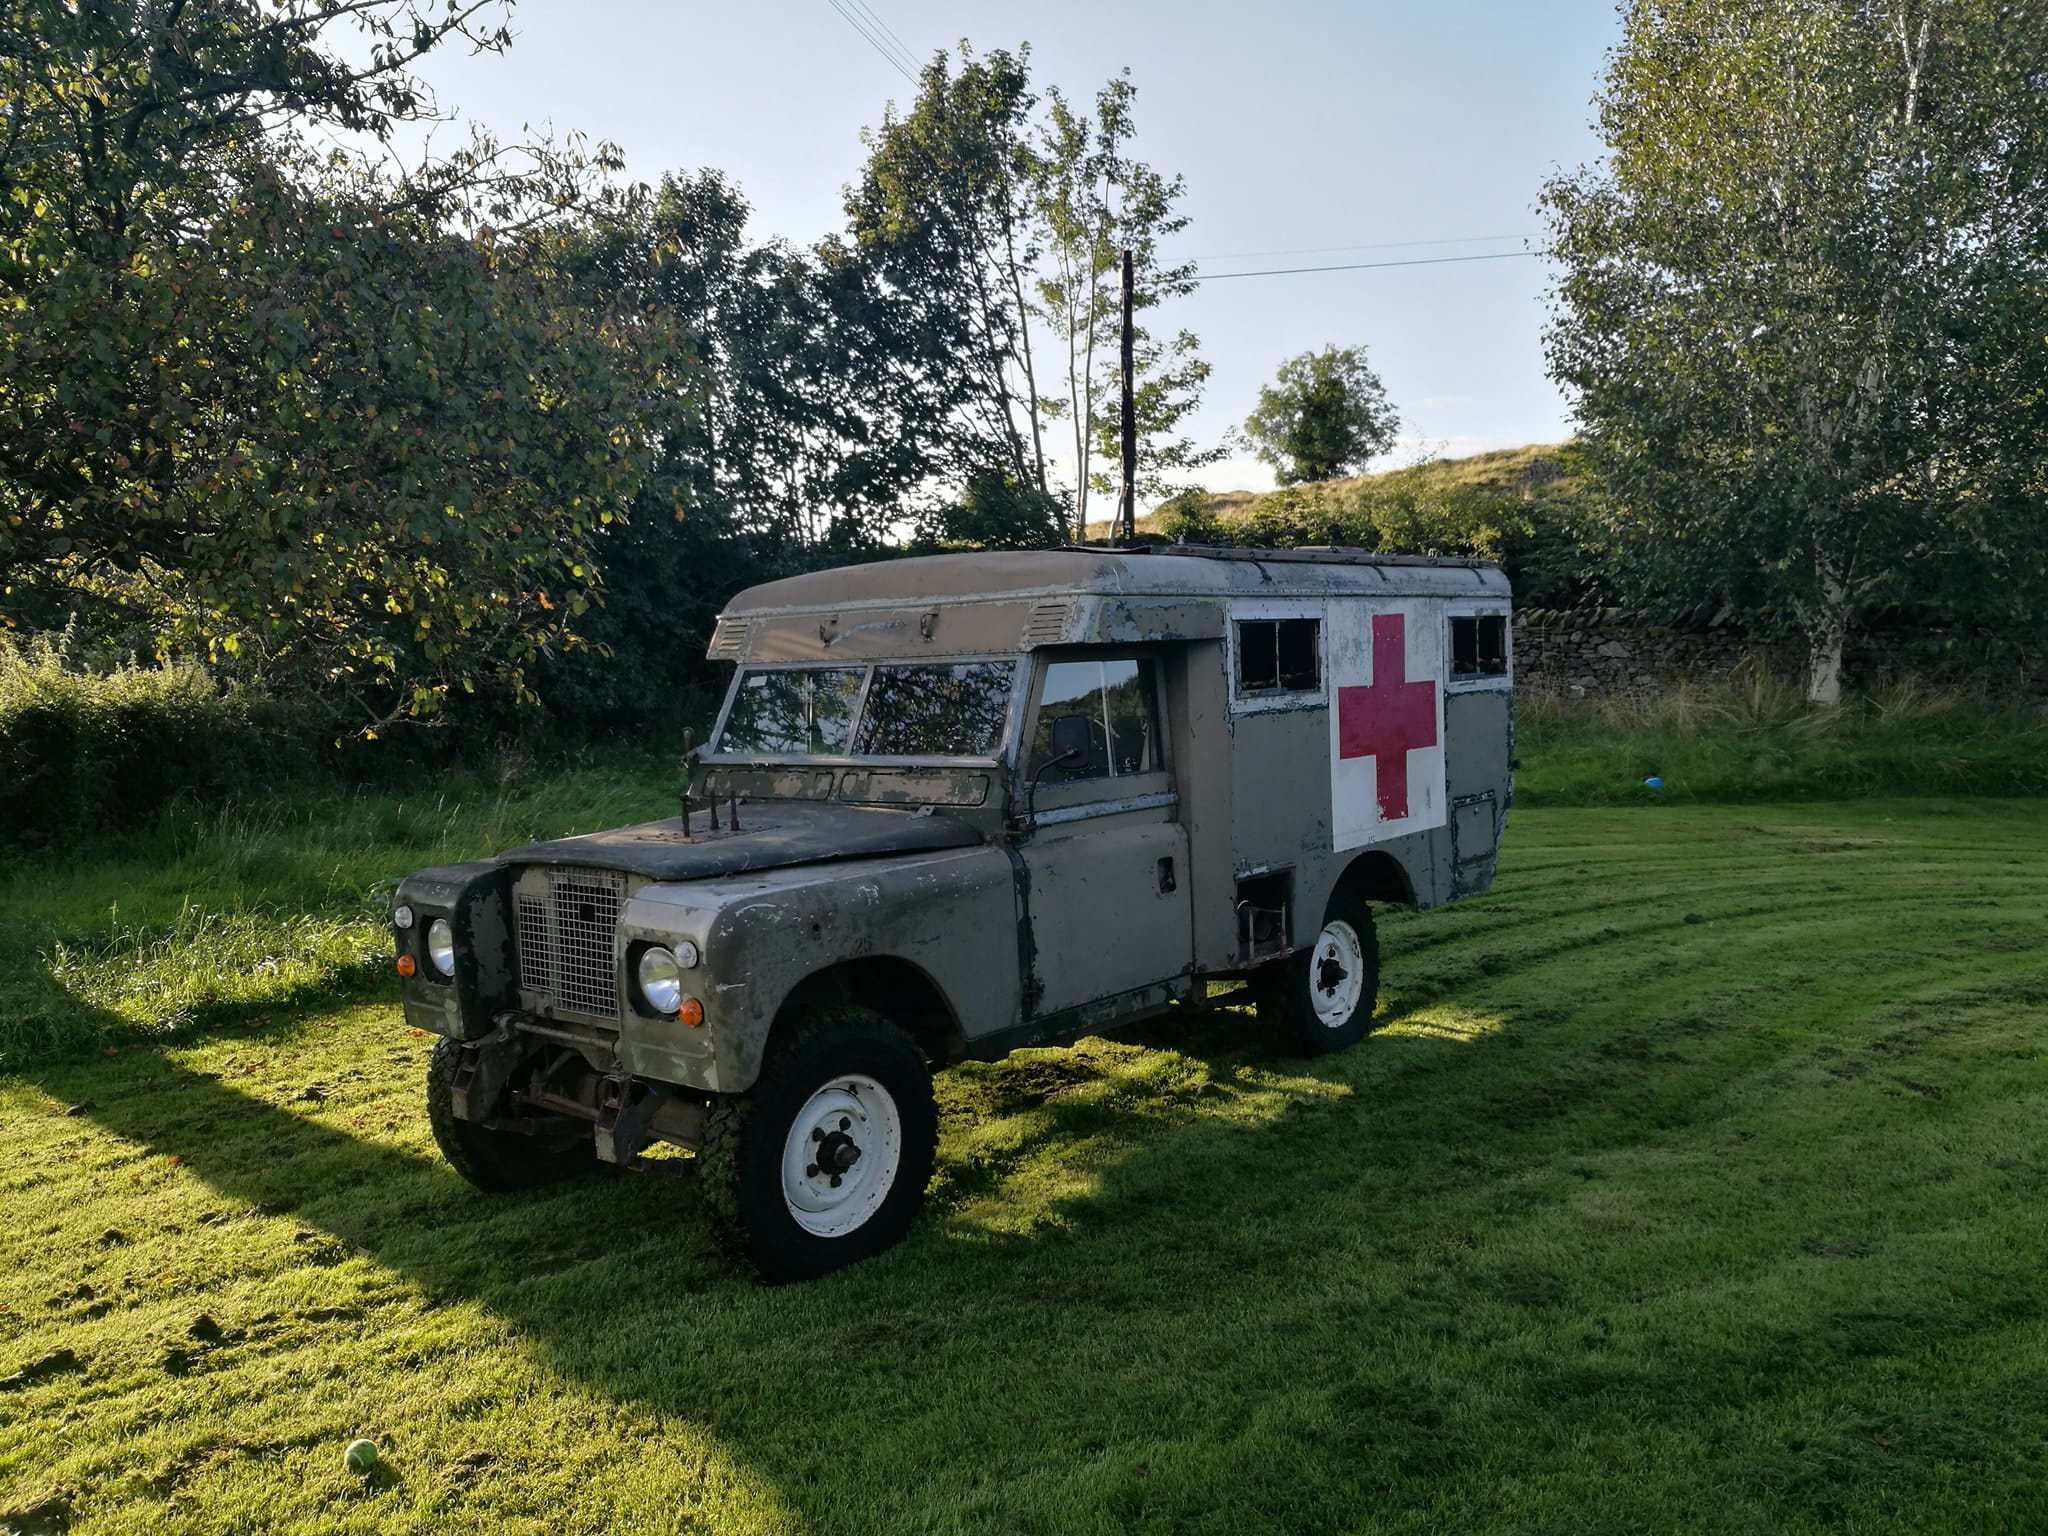 Land Rover Series 2a Ambulance a Heritage Crowdfunding Project in